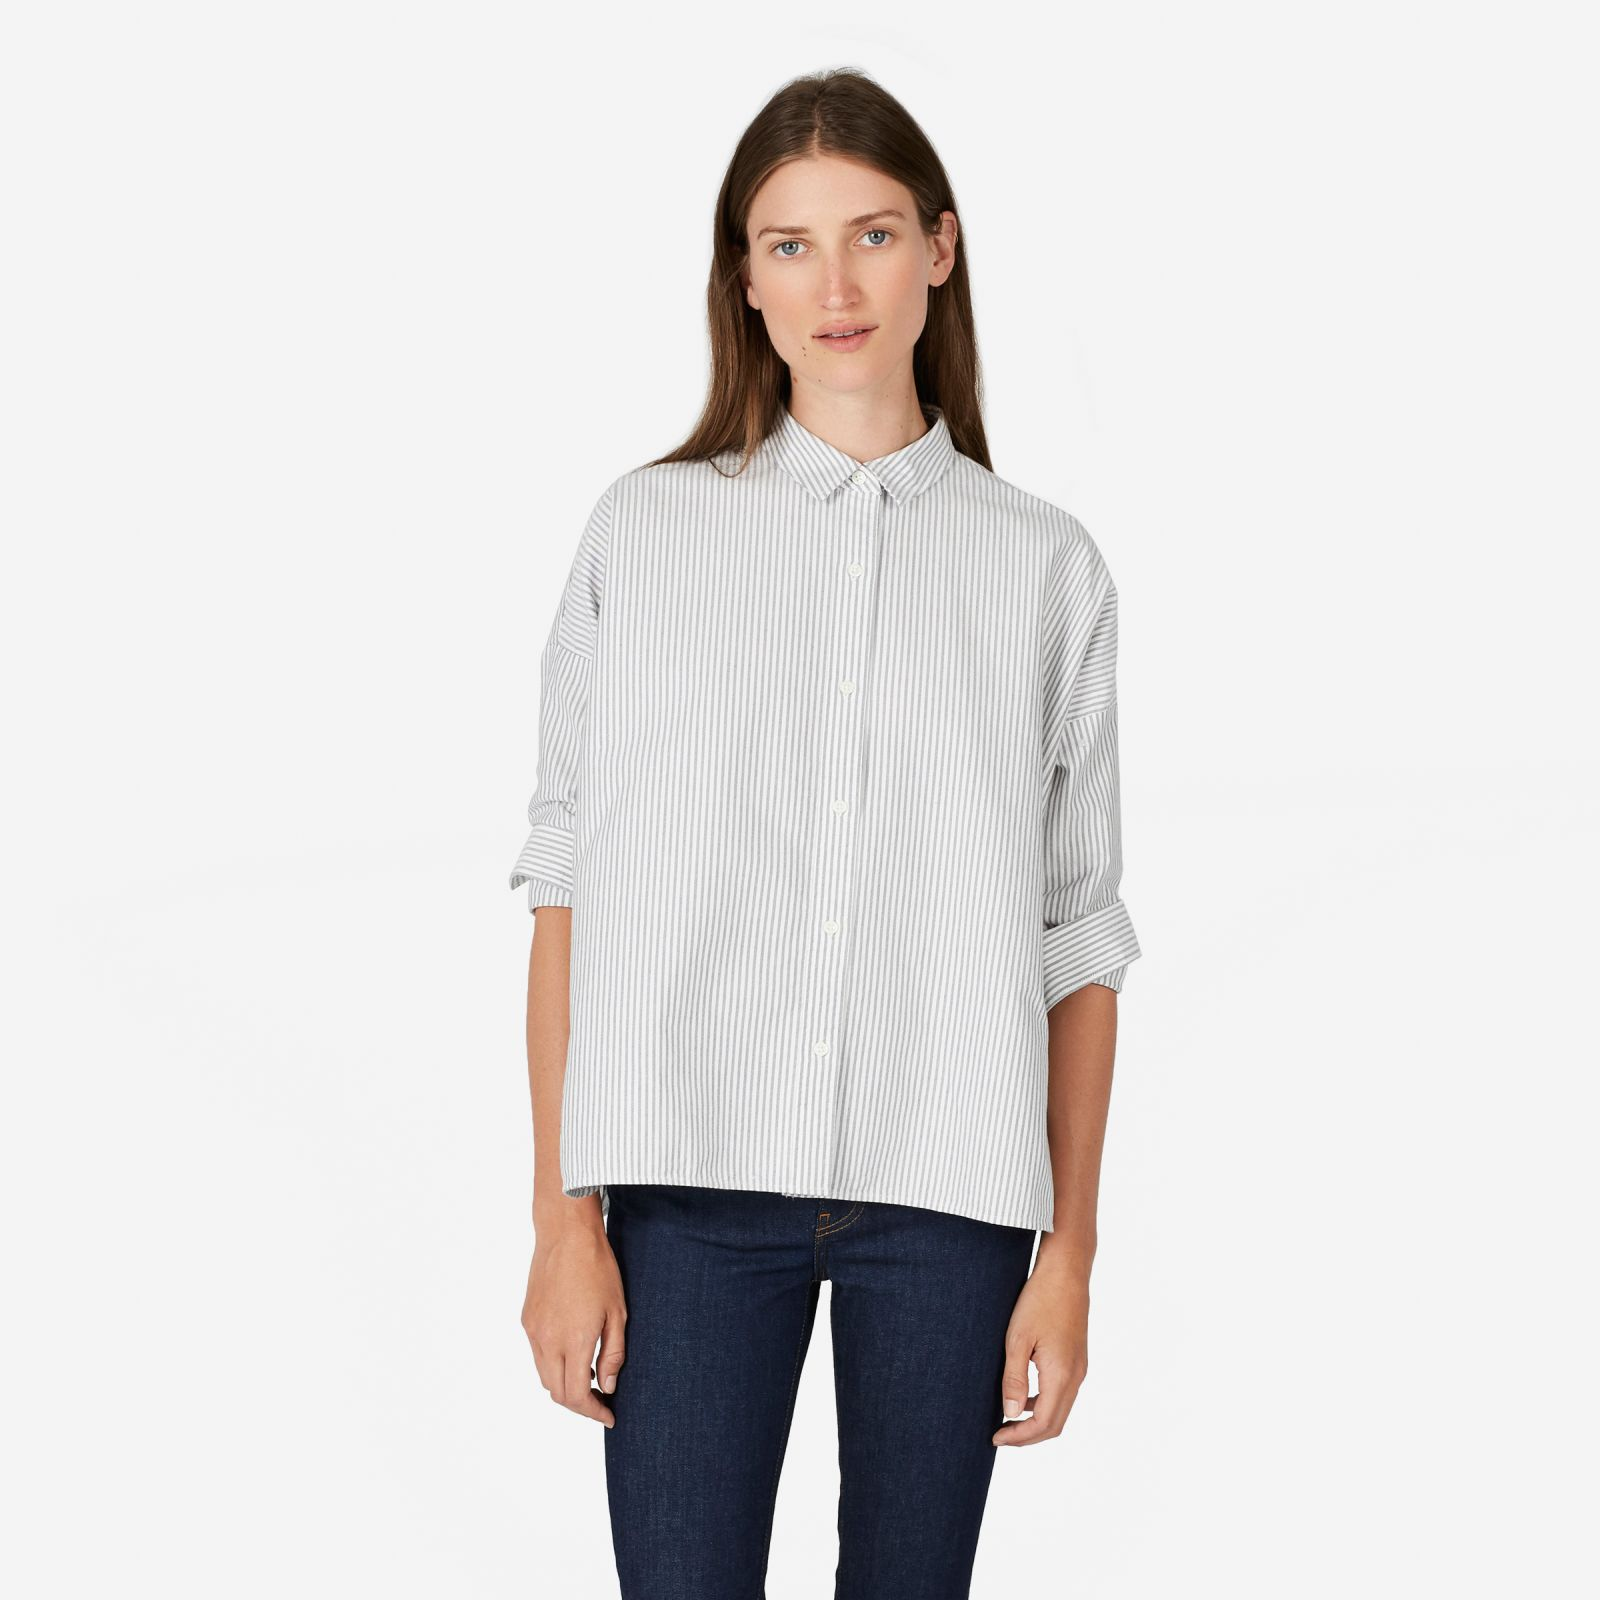 women's japanese oxford square shirt by everlane in white / black, size 10